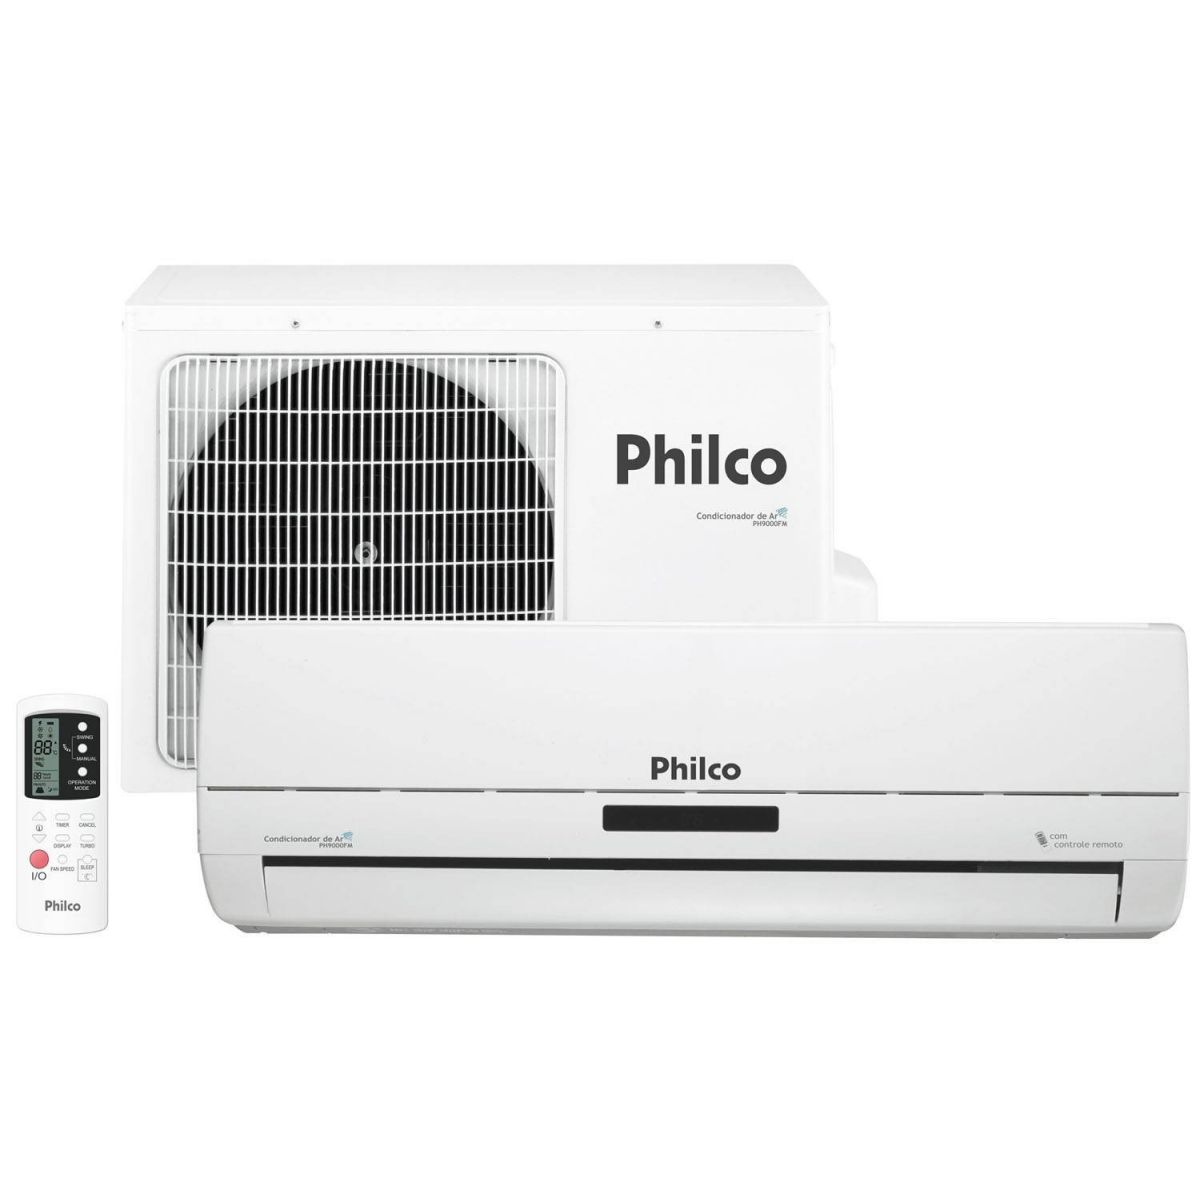 SPLIT HI WALL 12000 BTUS Q/F PHILCO